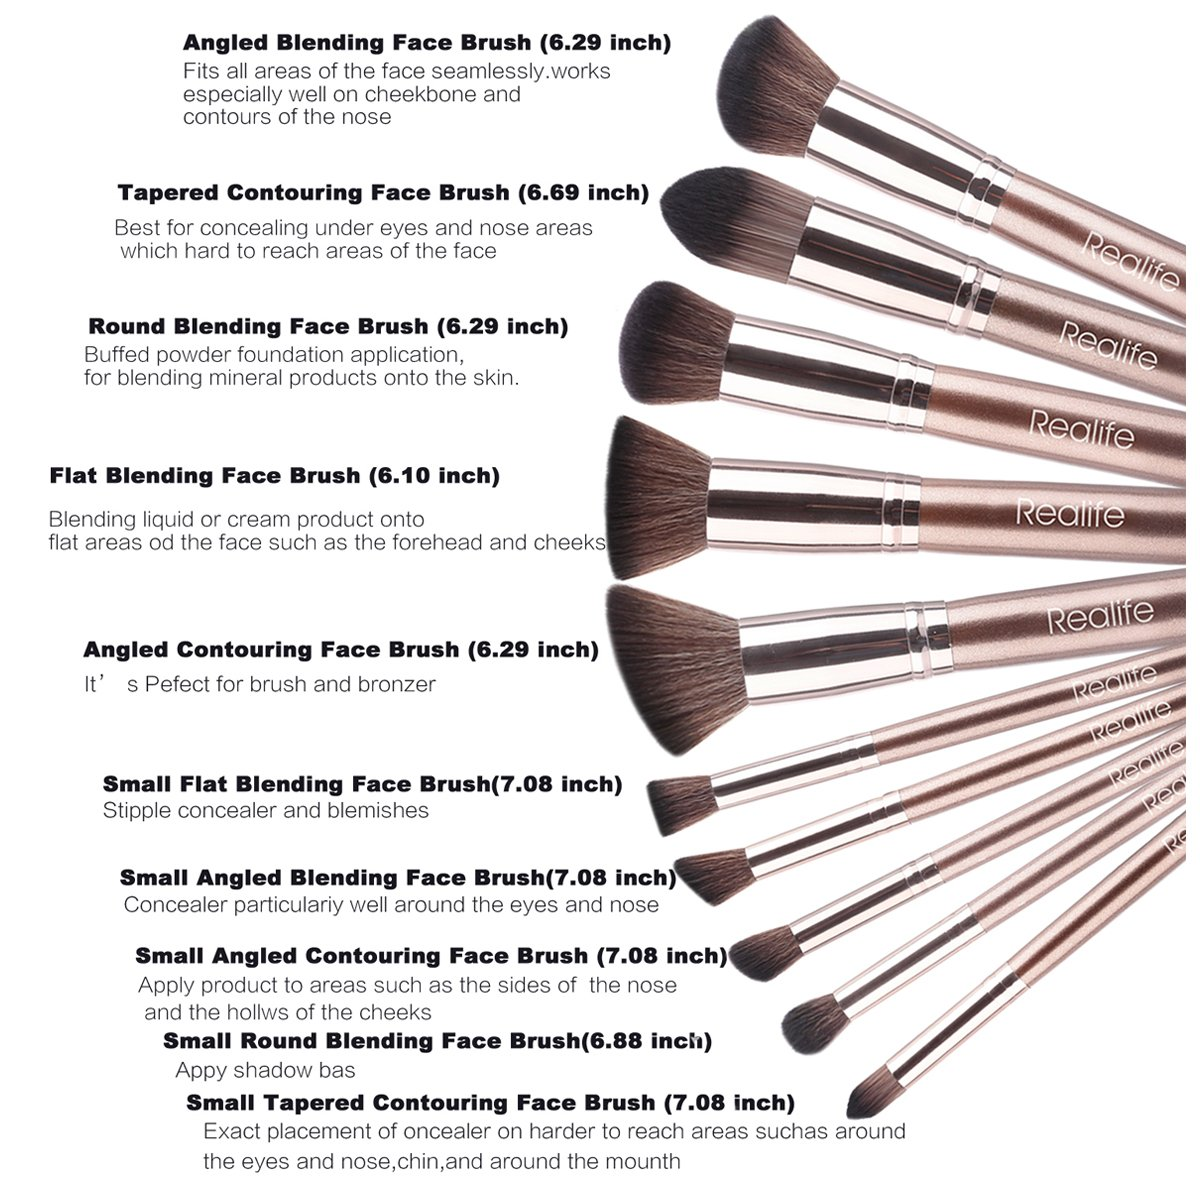 Make up Brushes Mactrem 10 Pieces Face Cosmetic Beginners Makeup Brush,Face Foundation Powder Buffing Blending Professional Face Brushes, Eyeshadow Brush Organiser with Travel Bag